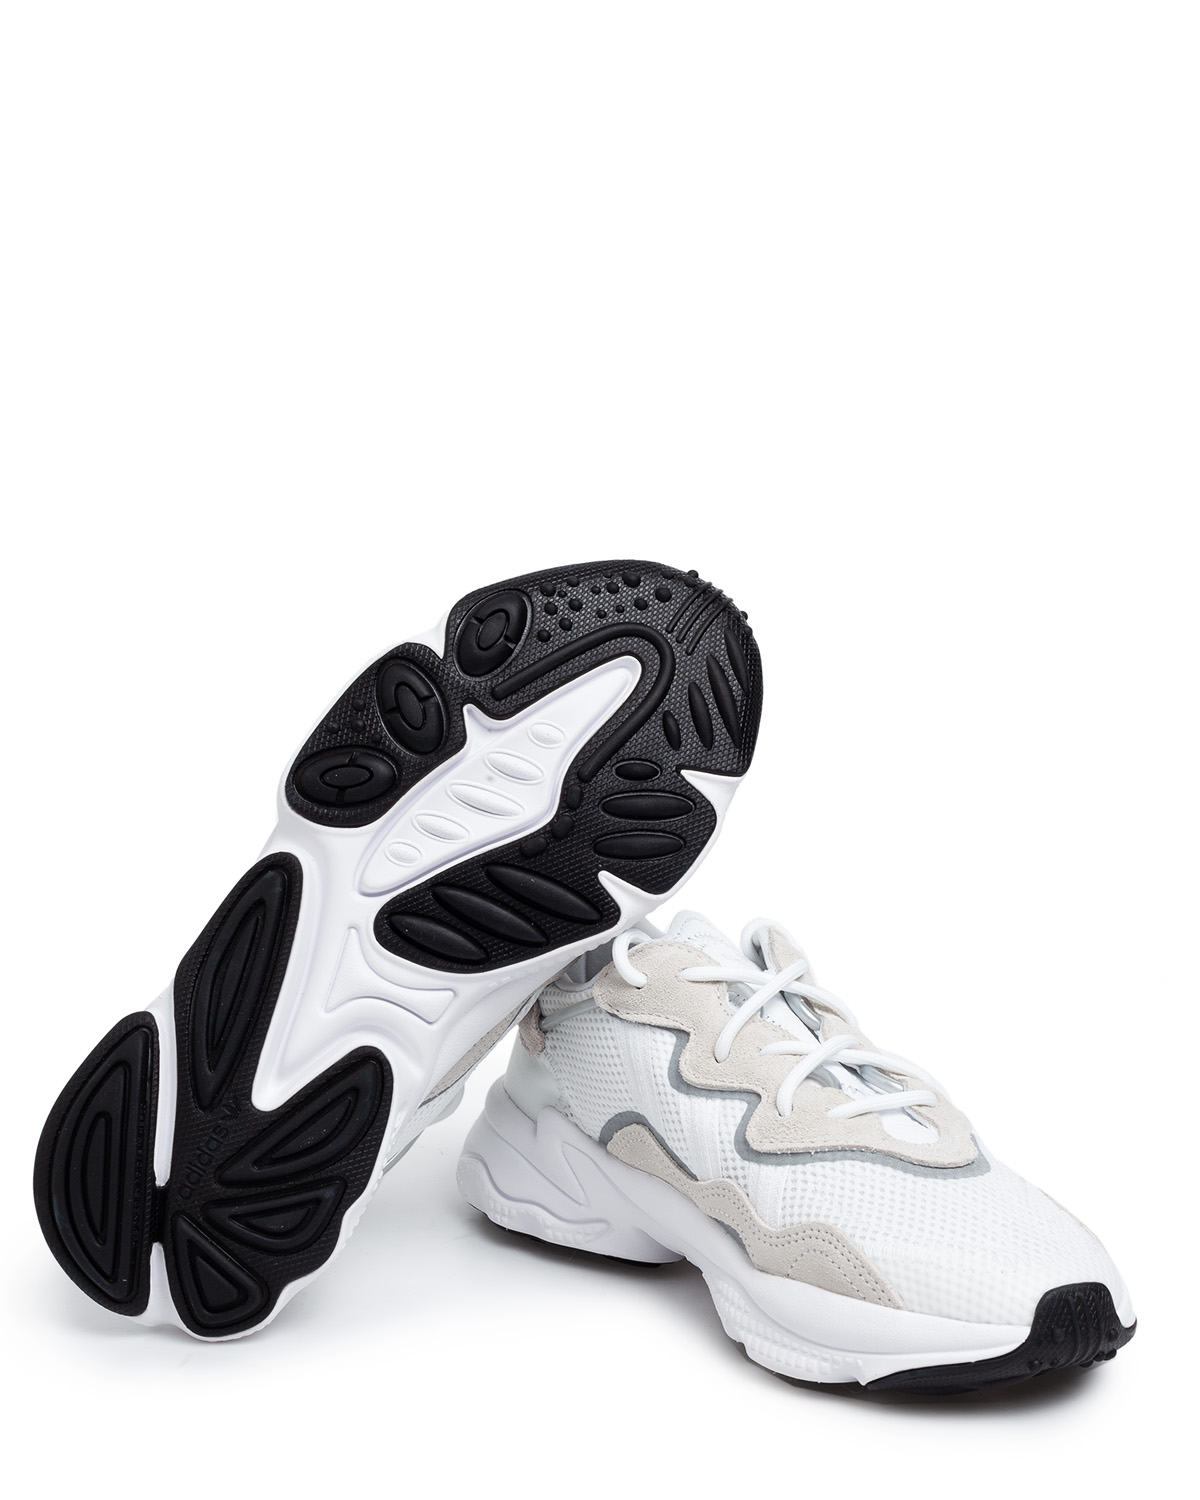 Adidas Yung 1 White : Adidas Shoes | Find our Lowest